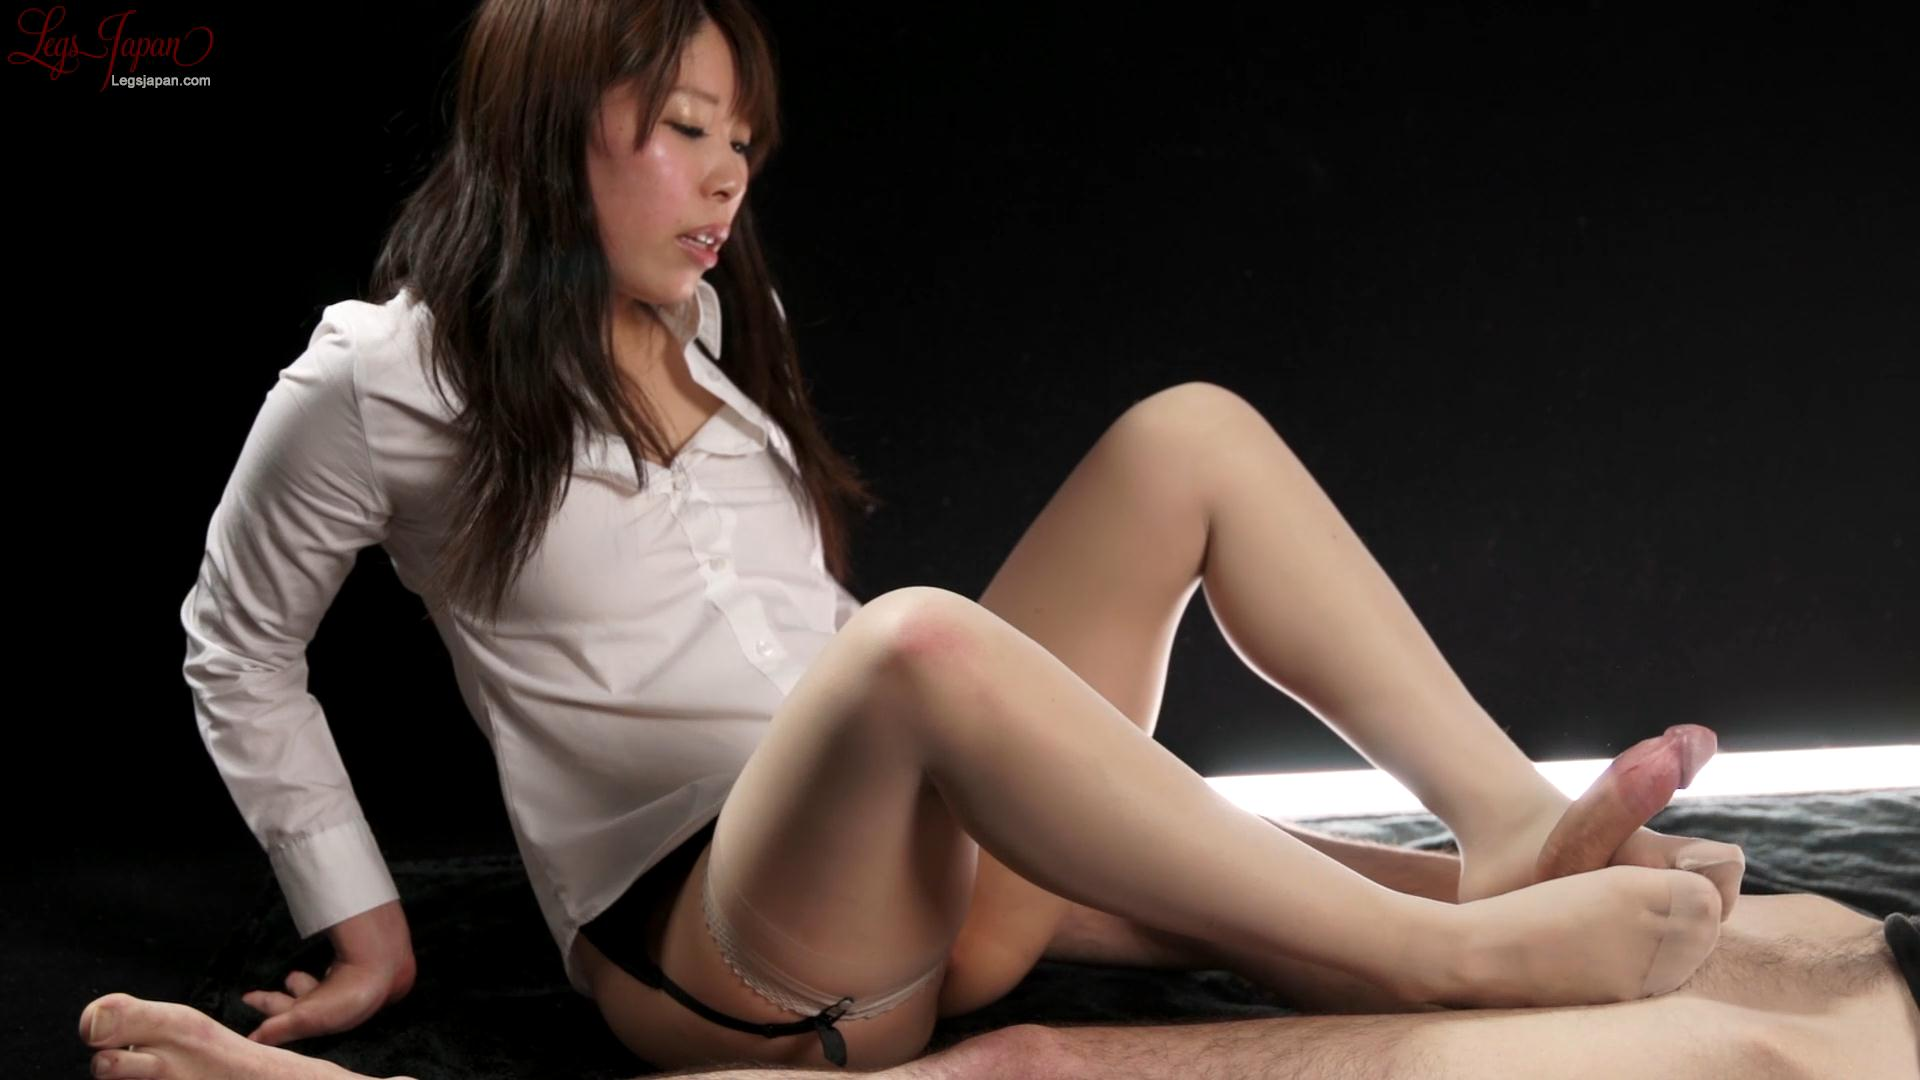 Blouse and Garter Stocking Footjob – Legs Japan – Ruru Sakurai